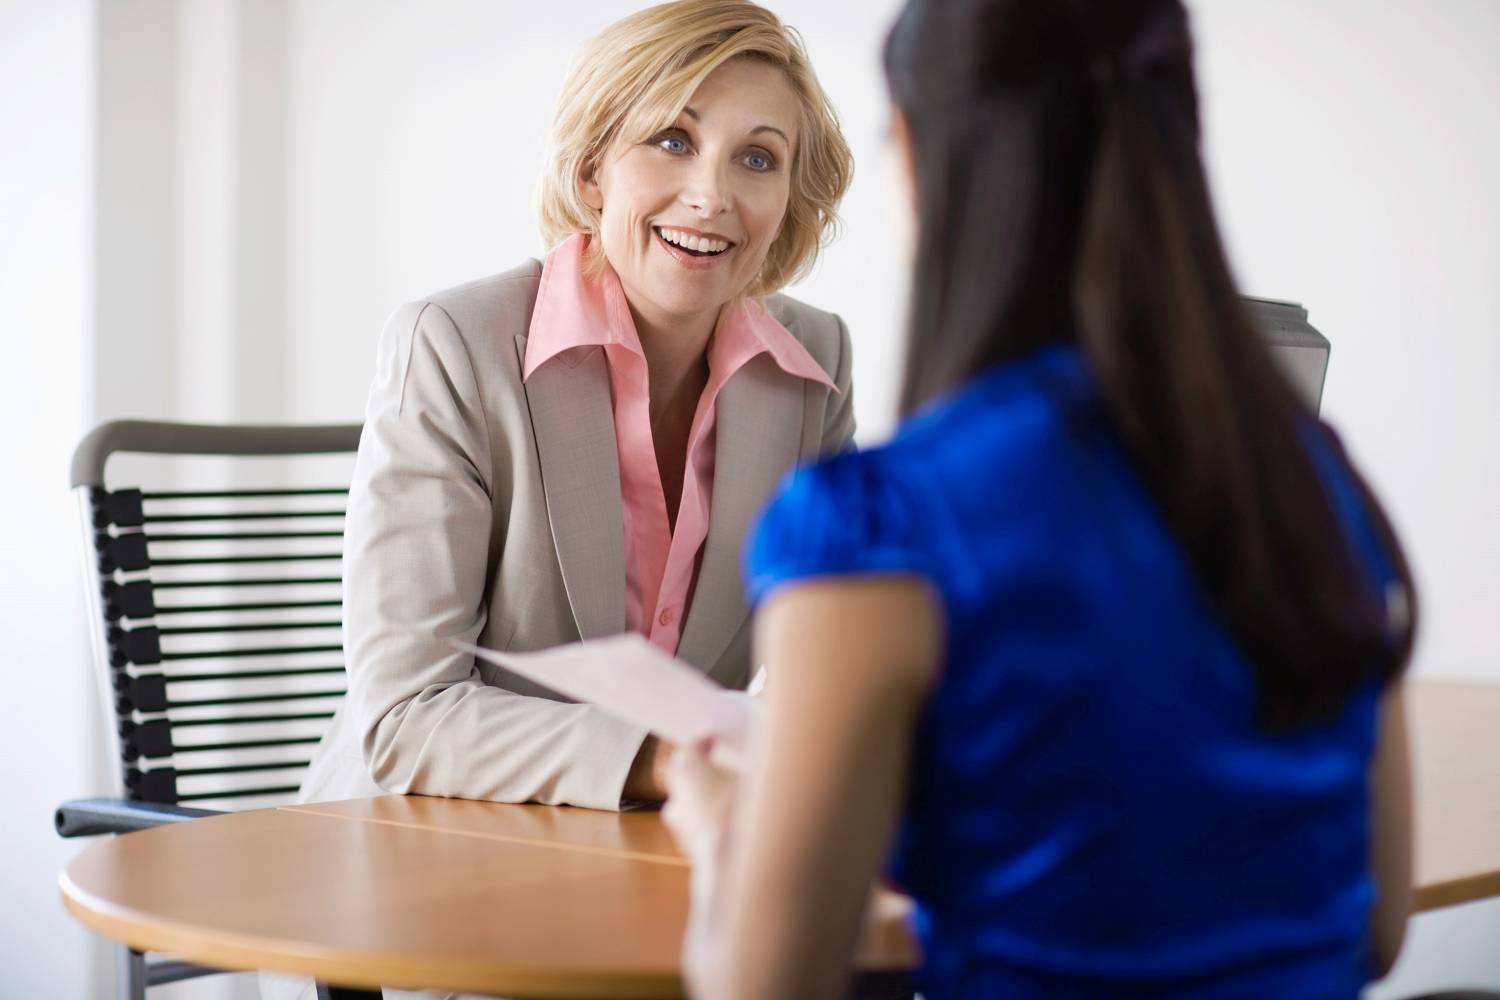 personal interview Personal interviews represent a bridge that candidates must cross to move from job seeker to new hire however, many interviewees fail to appreciate personal interviews as a pre-acceptance tool that can help them avoid making a career mistake.